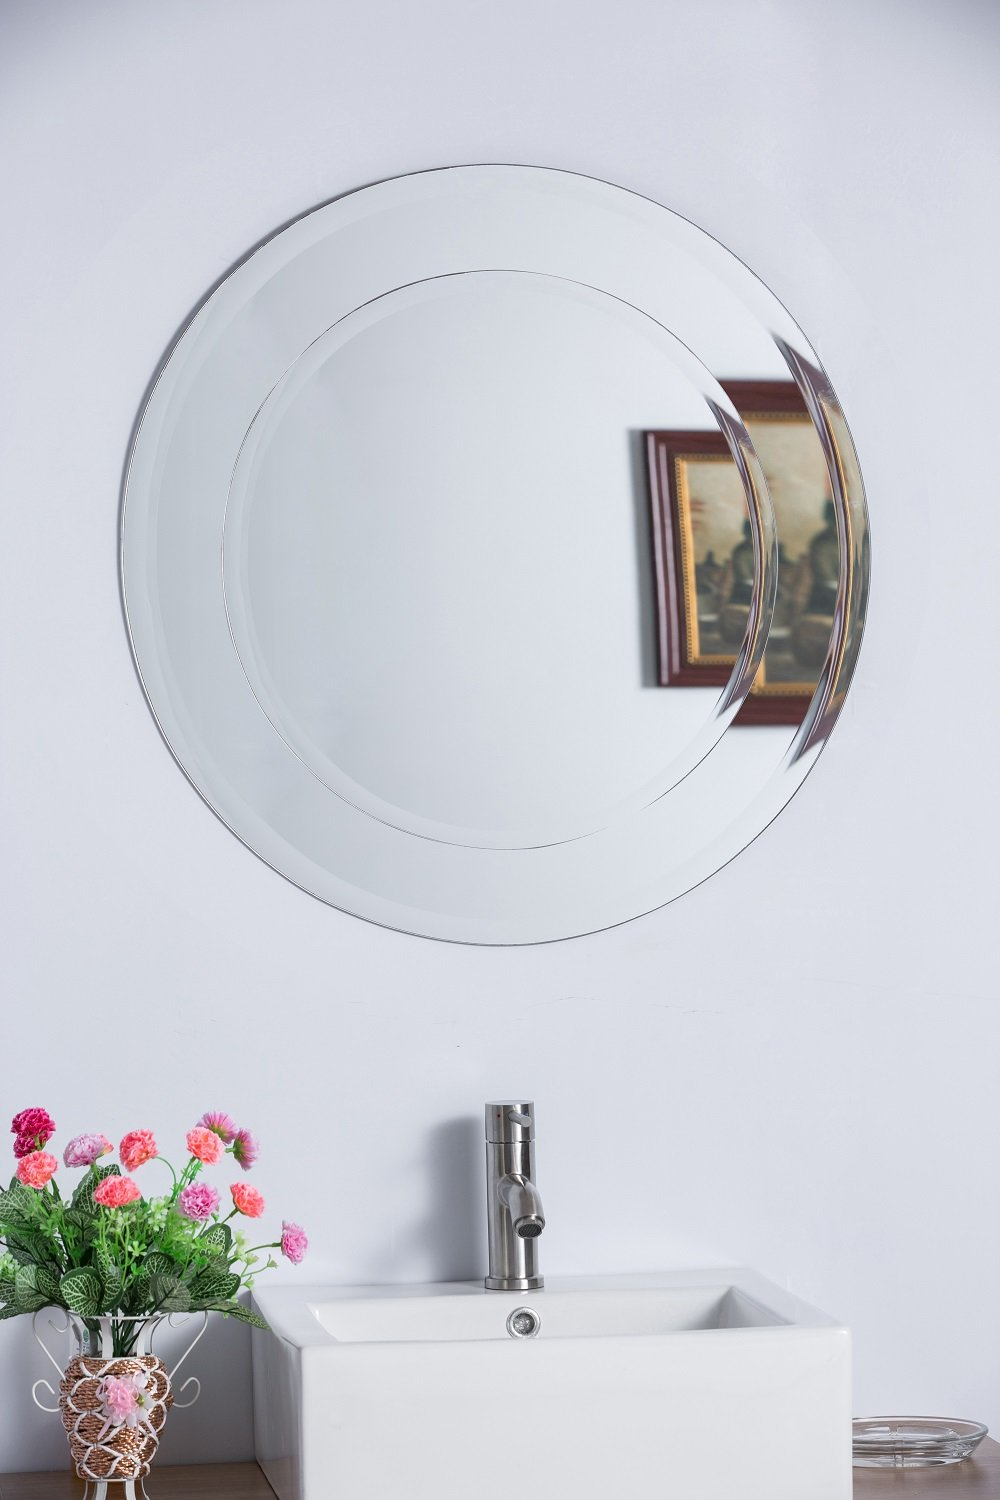 Moreno Bathroom/vanity Mirror Pertaining To Celeste Frameless Round Wall Mirrors (View 12 of 20)